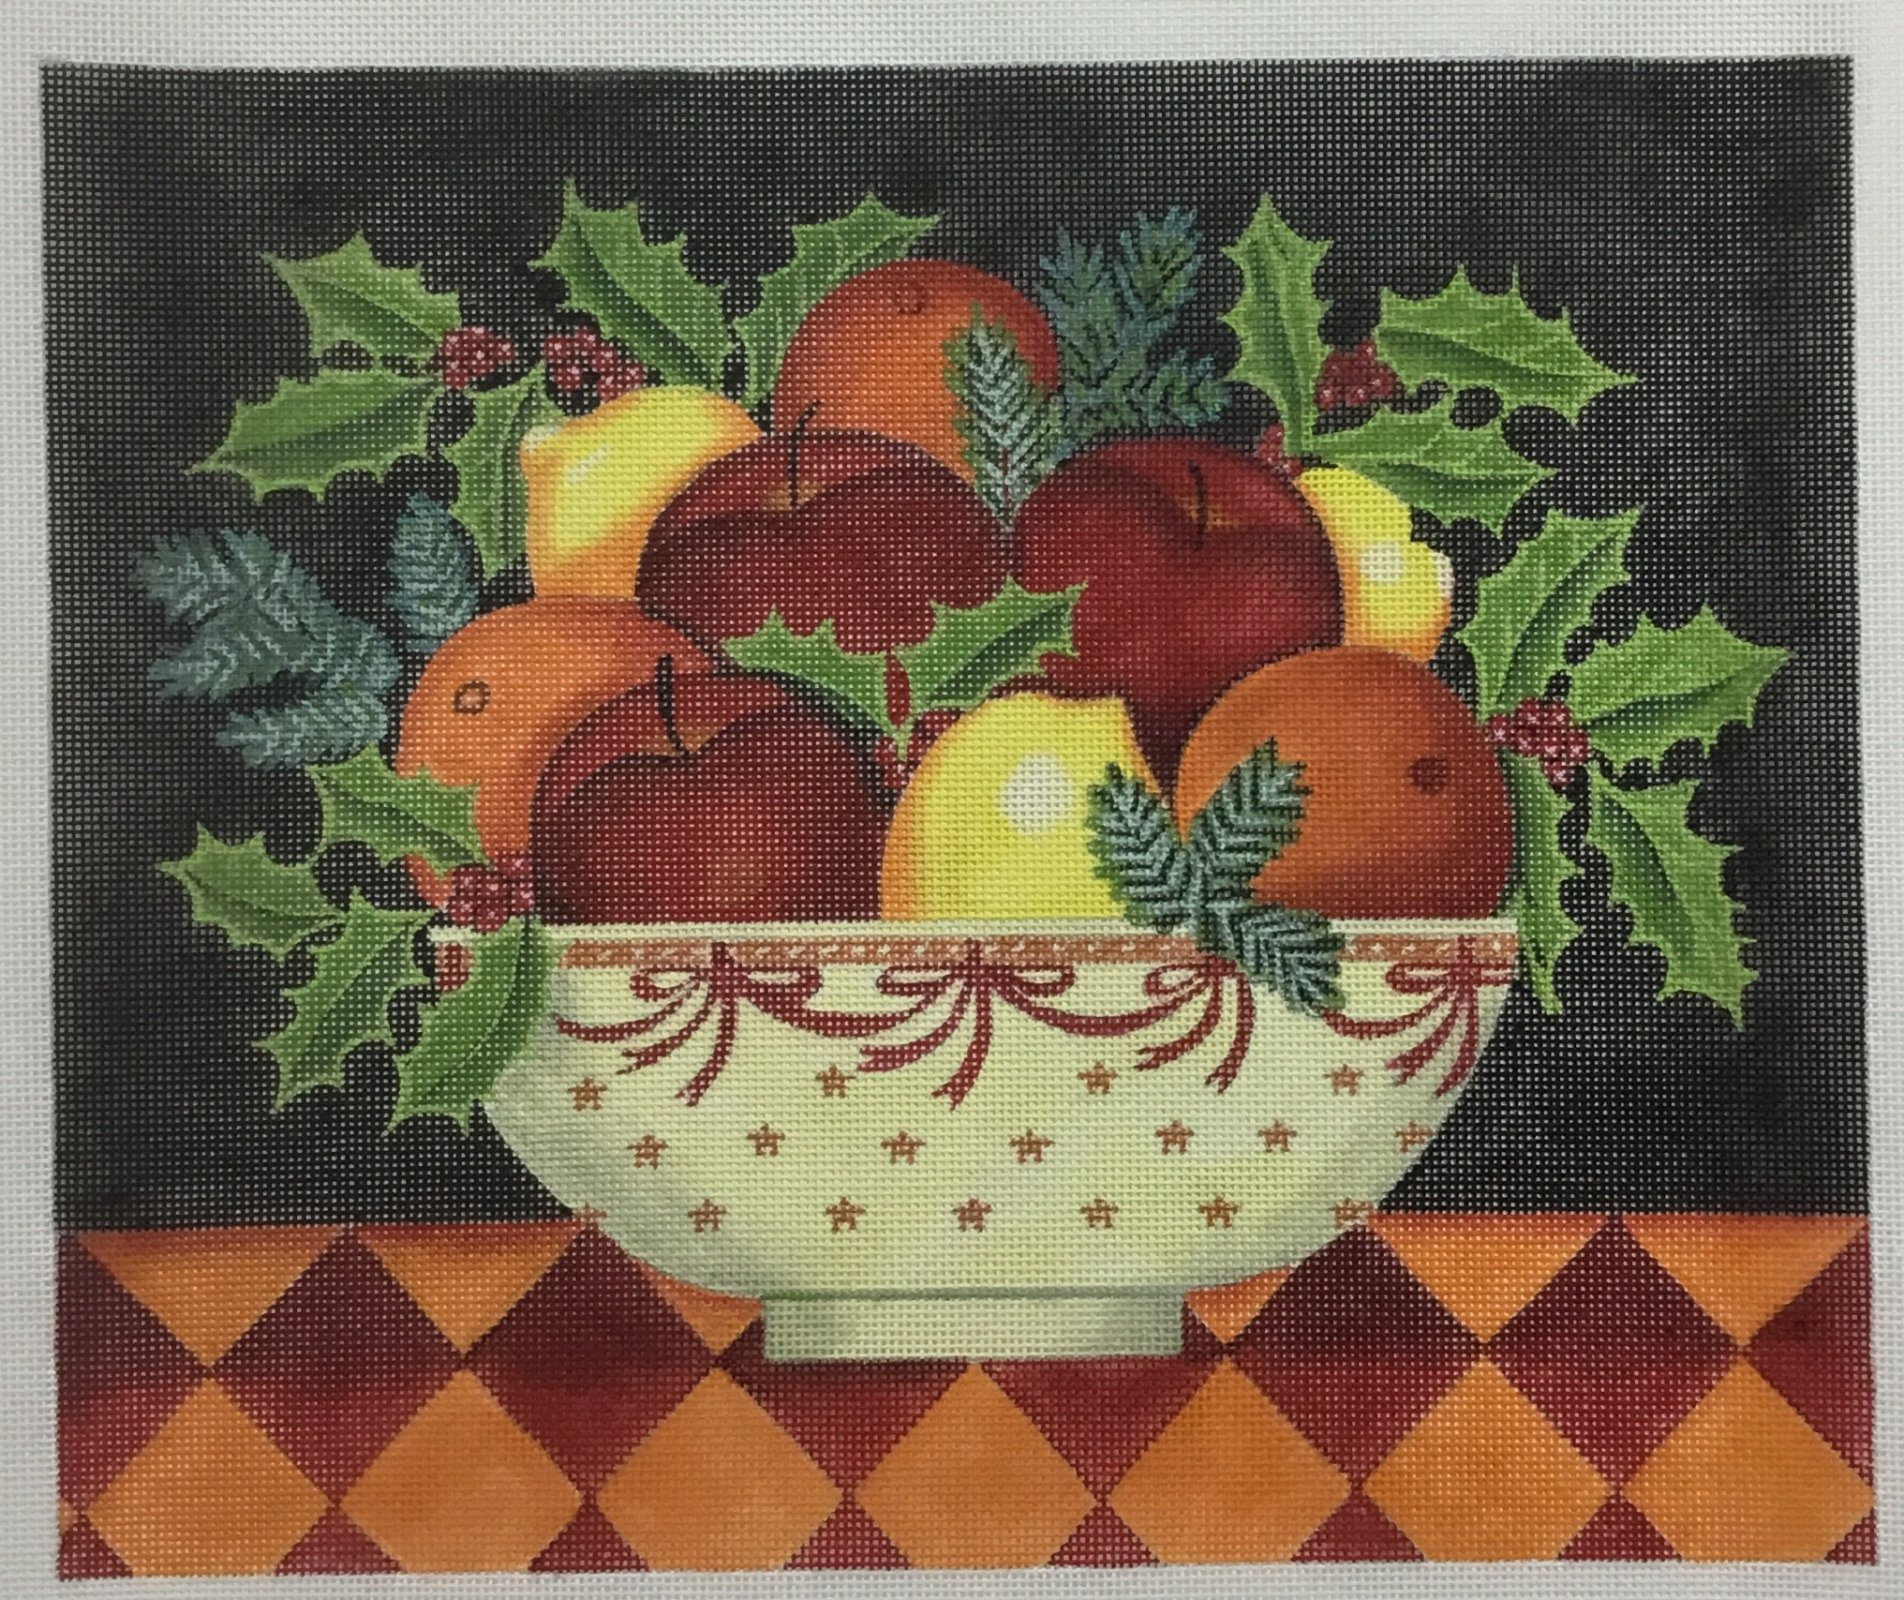 Christmas Fruit Bowl, 18 ct., 12 x 10